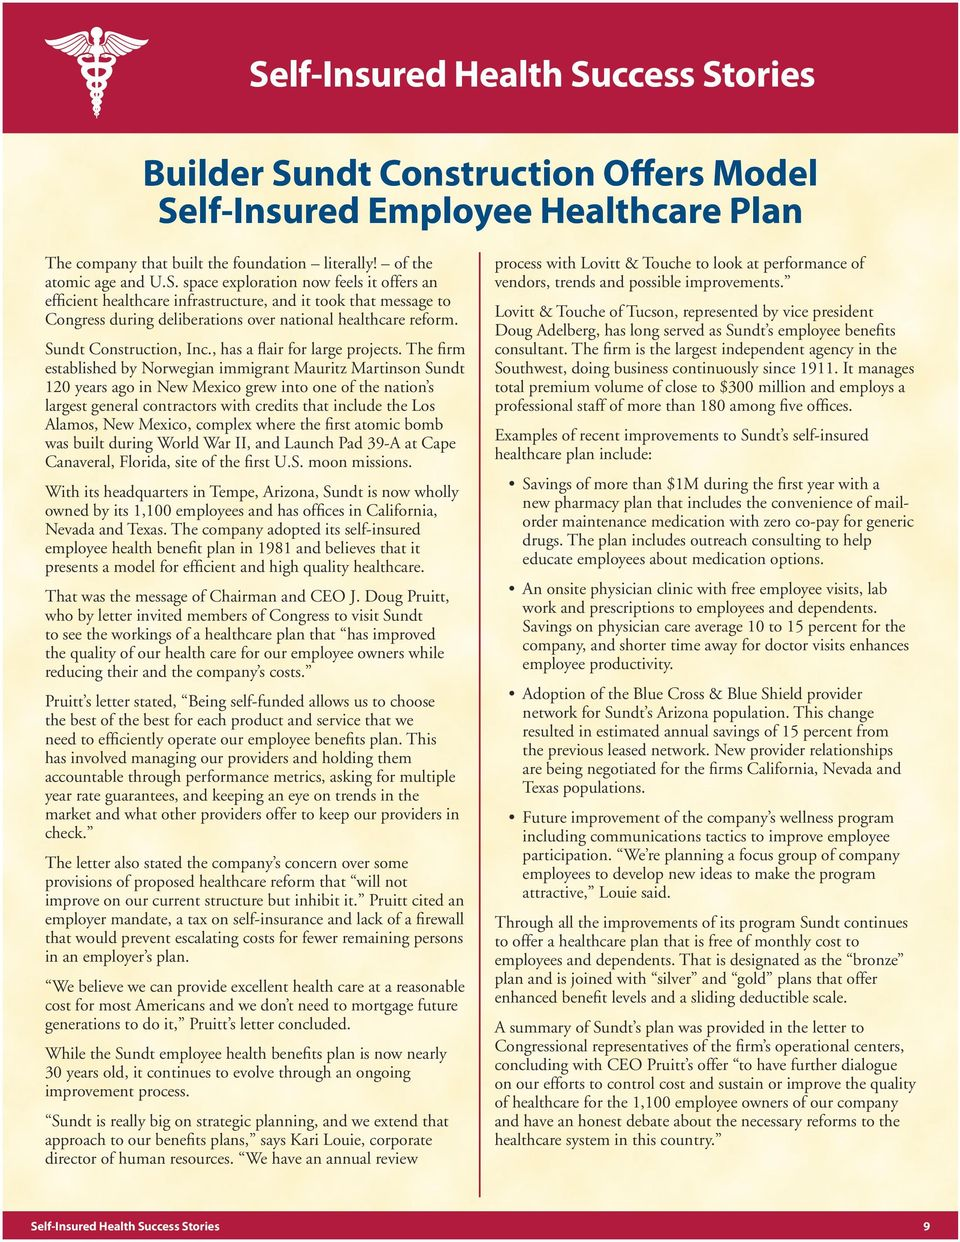 The firm established by Norwegian immigrant Mauritz Martinson Sundt 120 years ago in New Mexico grew into one of the nation s largest general contractors with credits that include the Los Alamos, New